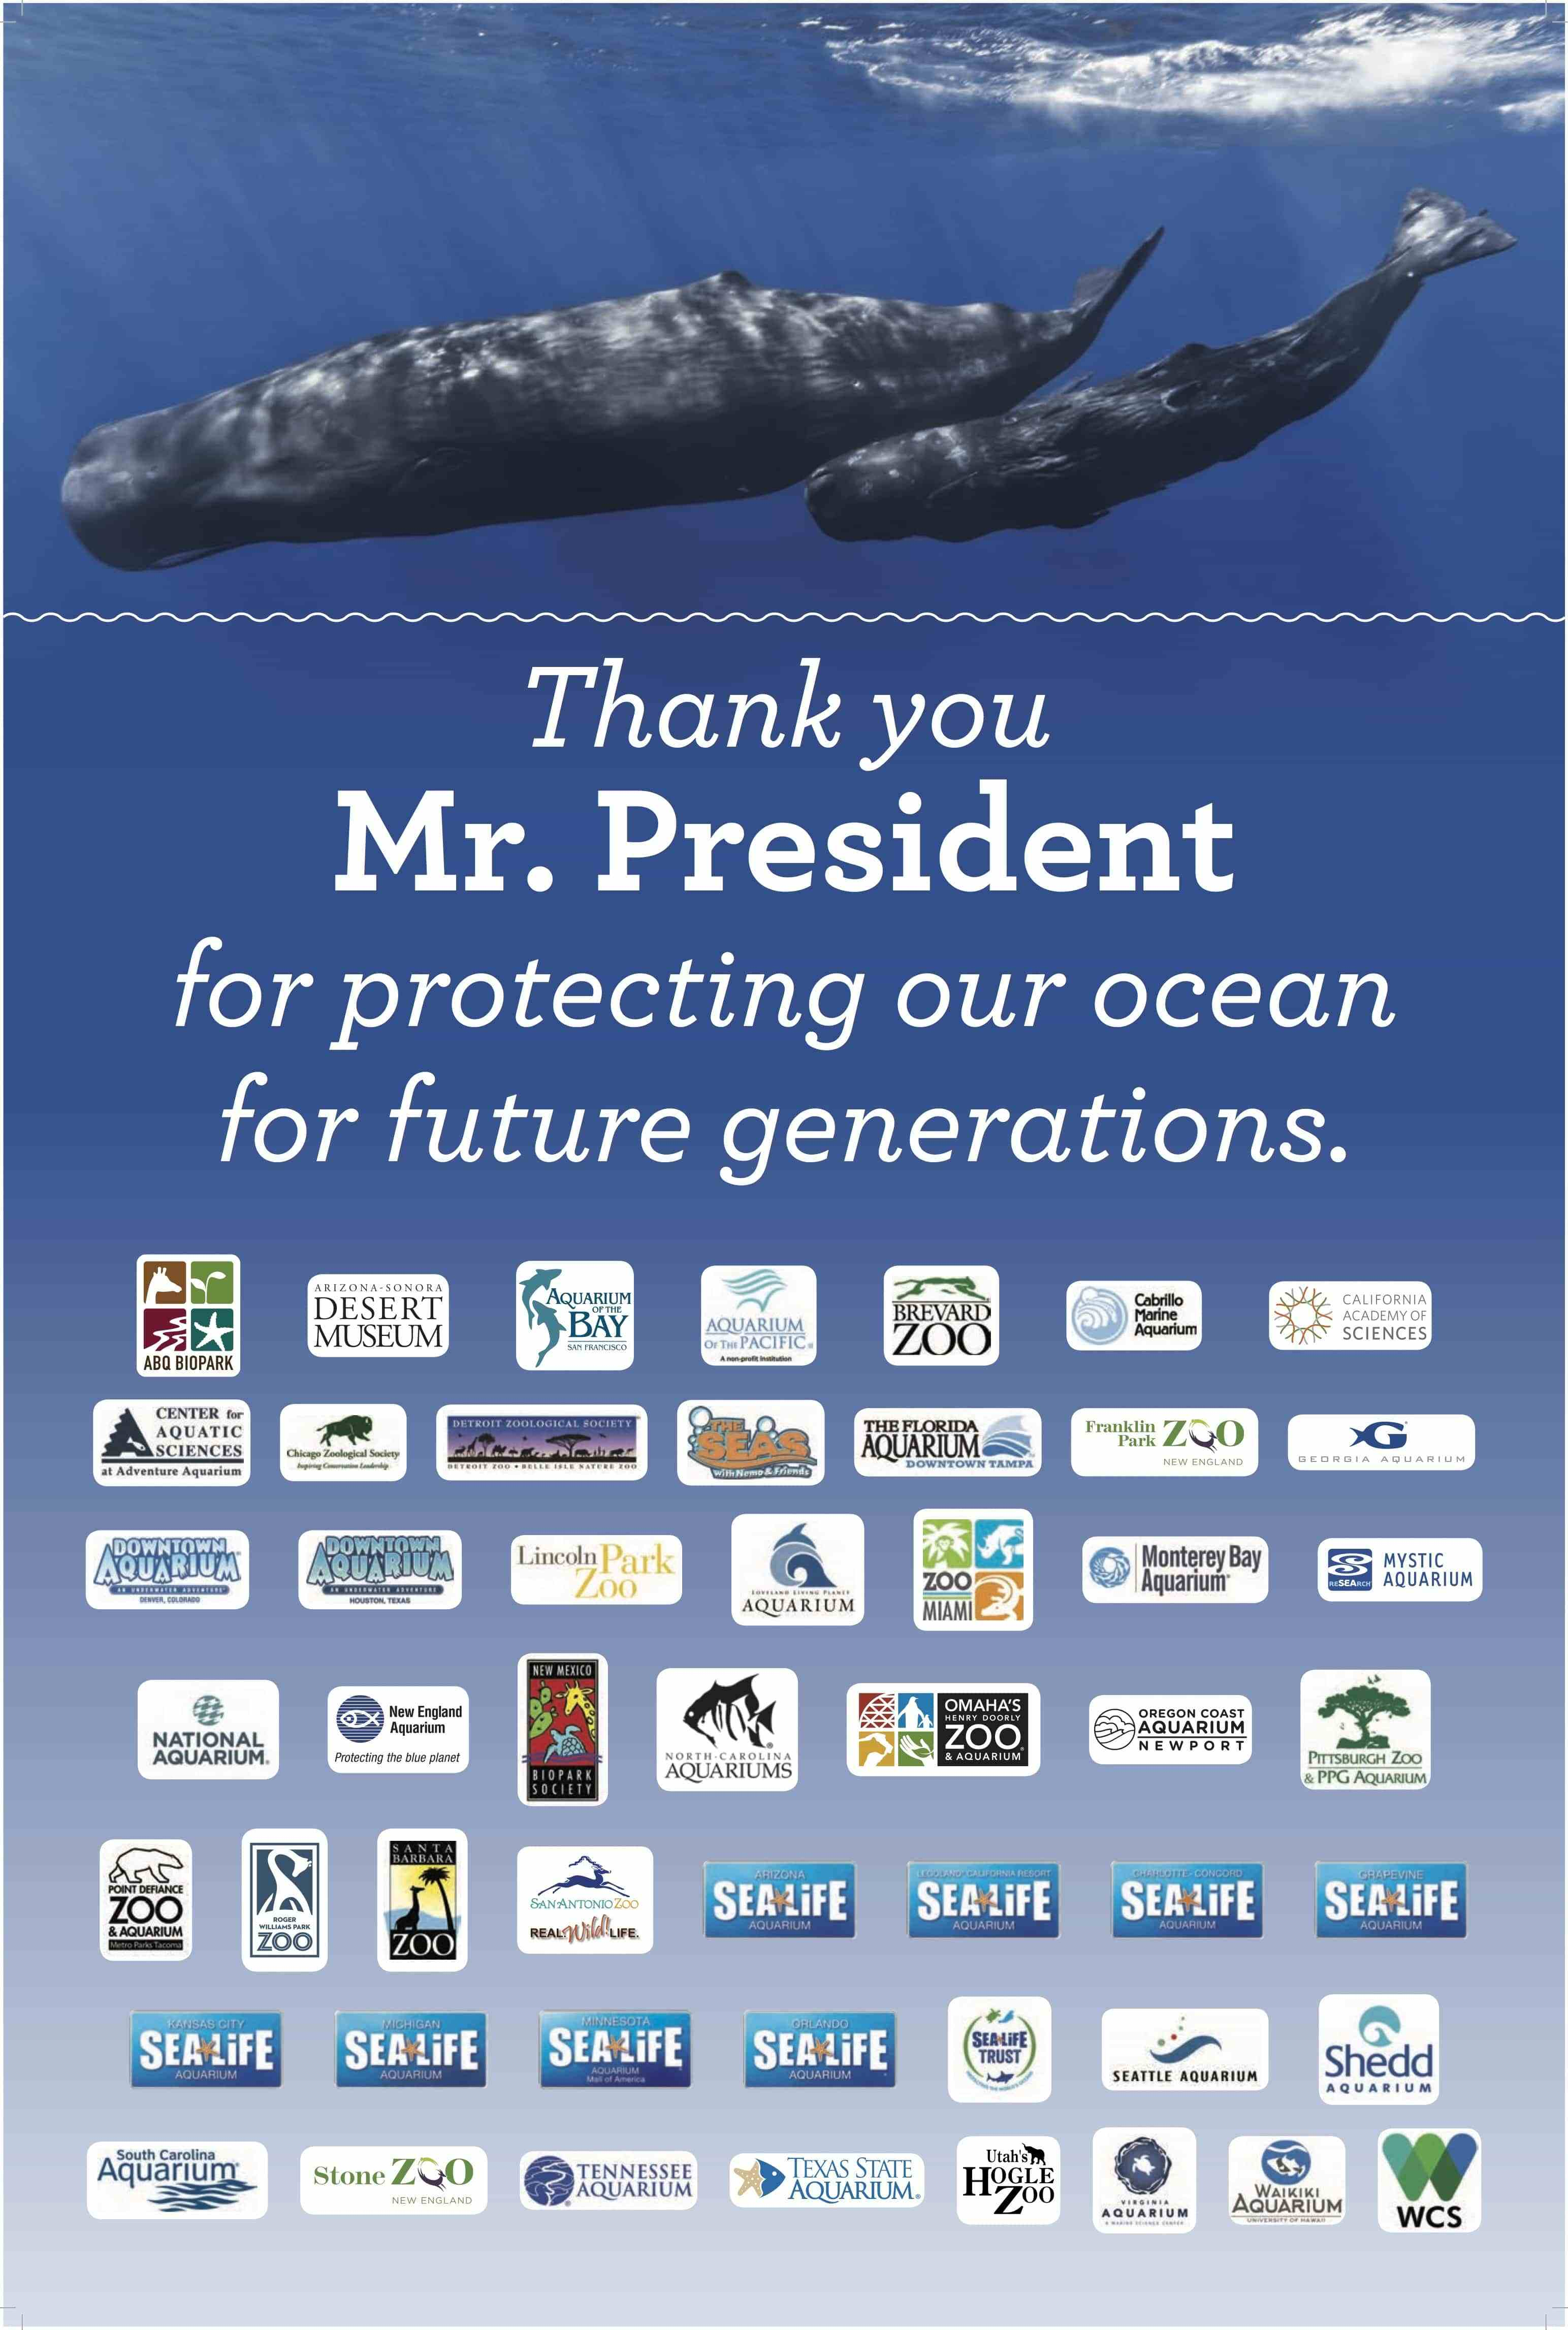 This poster-sized thank you card was delivered in December 2015 to the White House Council on Environmental Quality and the NOAA Chief of Staff, and now hangs on their respective walls.